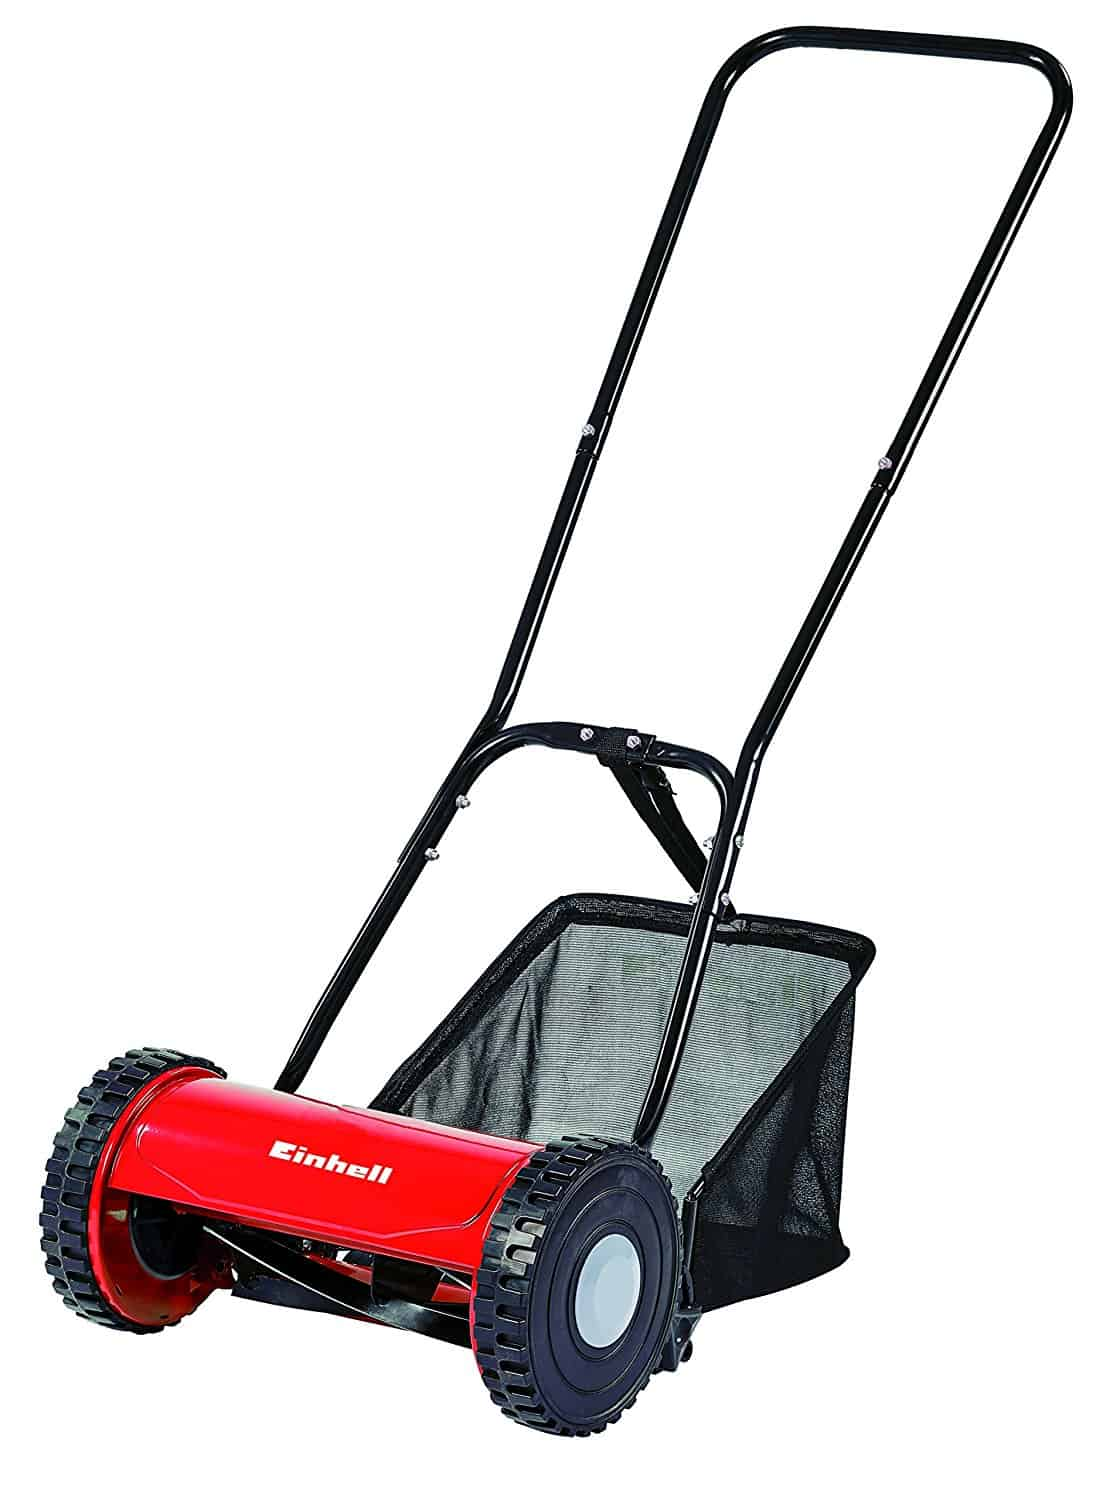 est Priced Lawn Mower for Small Garden – Einhell